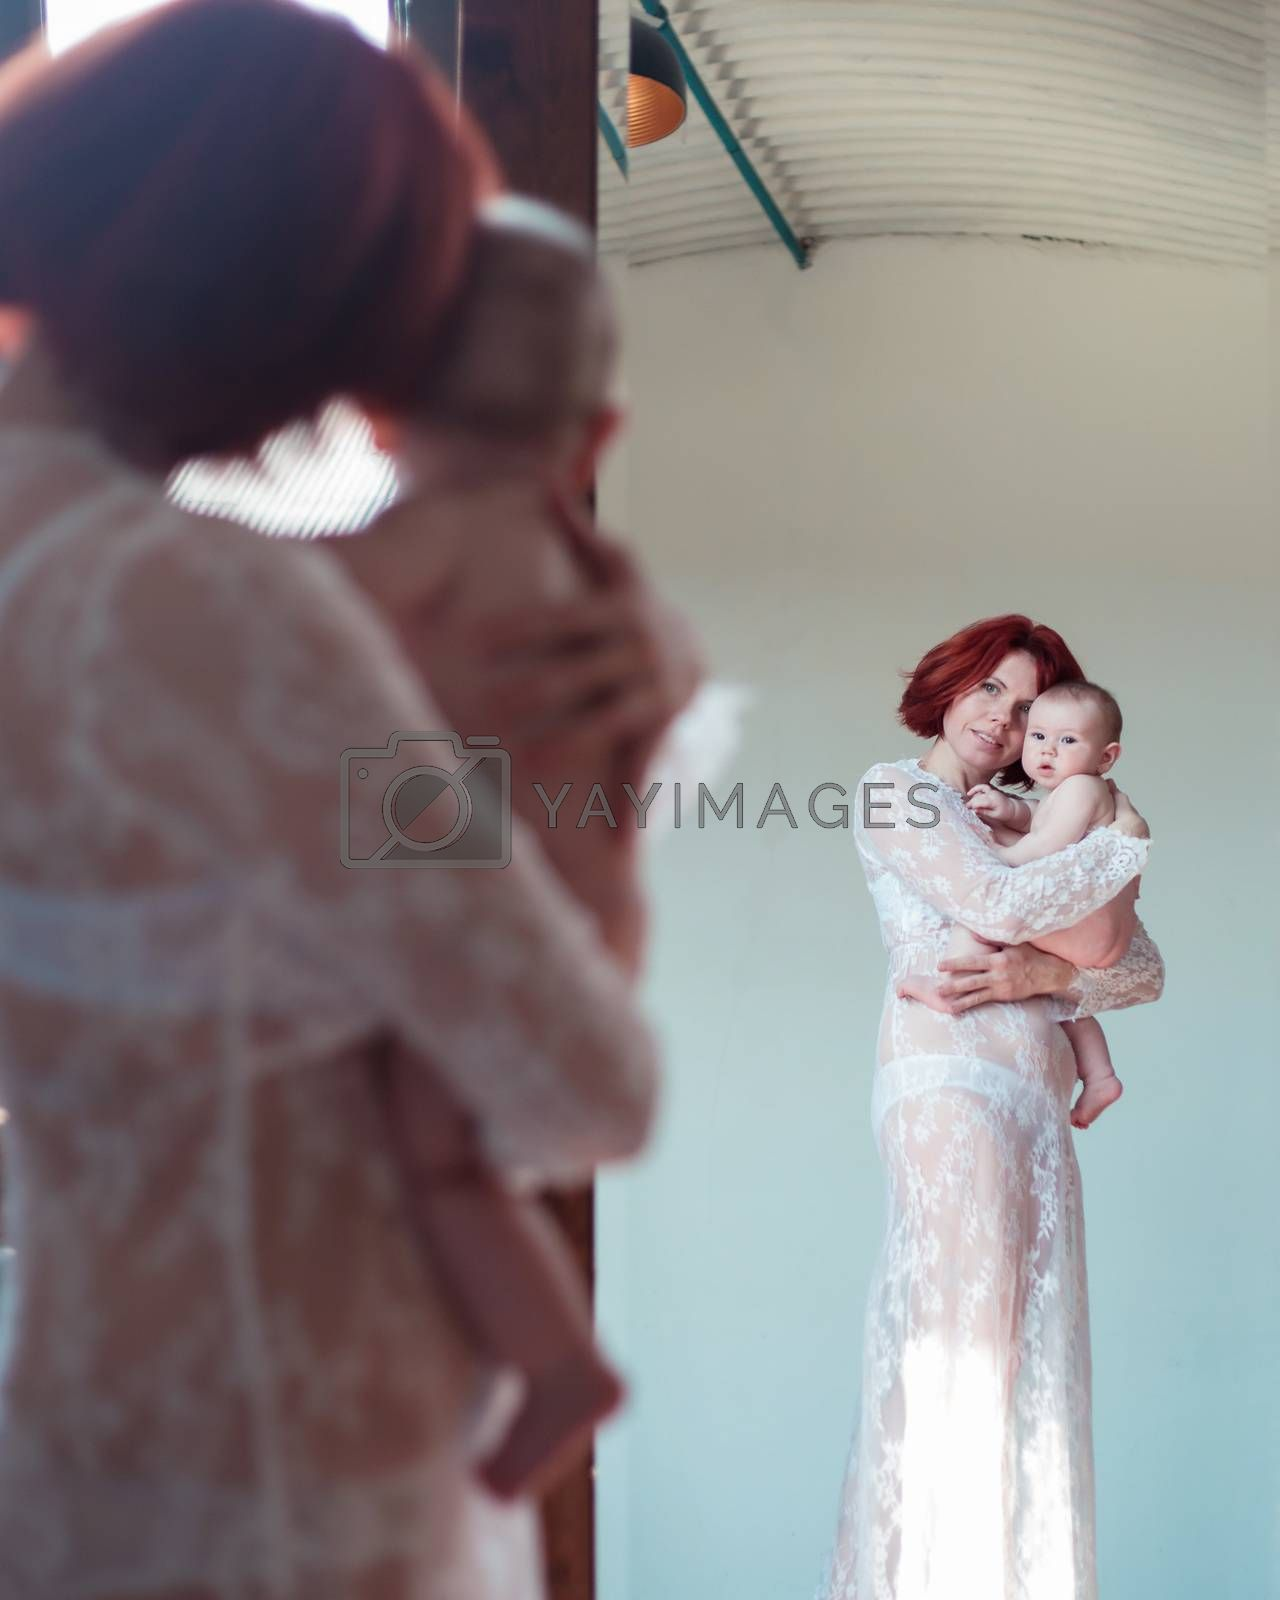 Mom holds the baby in her arms while standing in front of the mirror